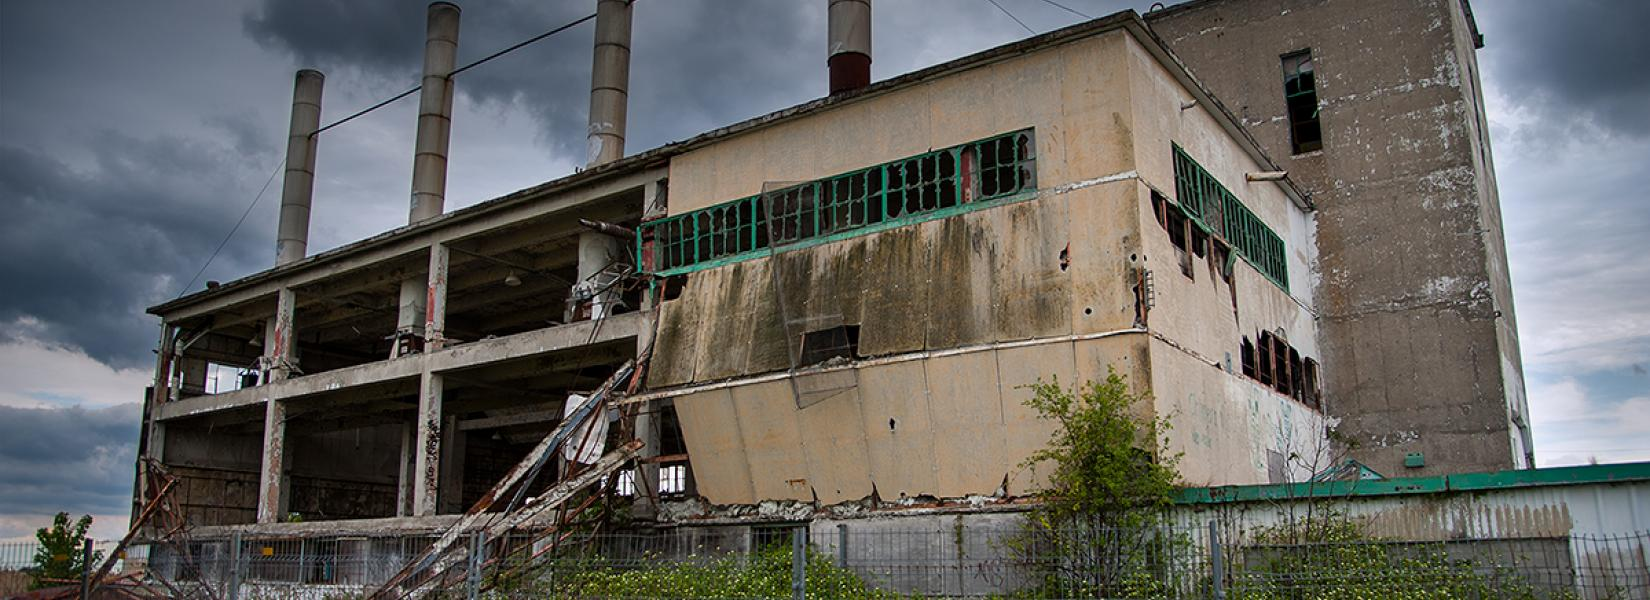 The abandoned plant in St-Hubert